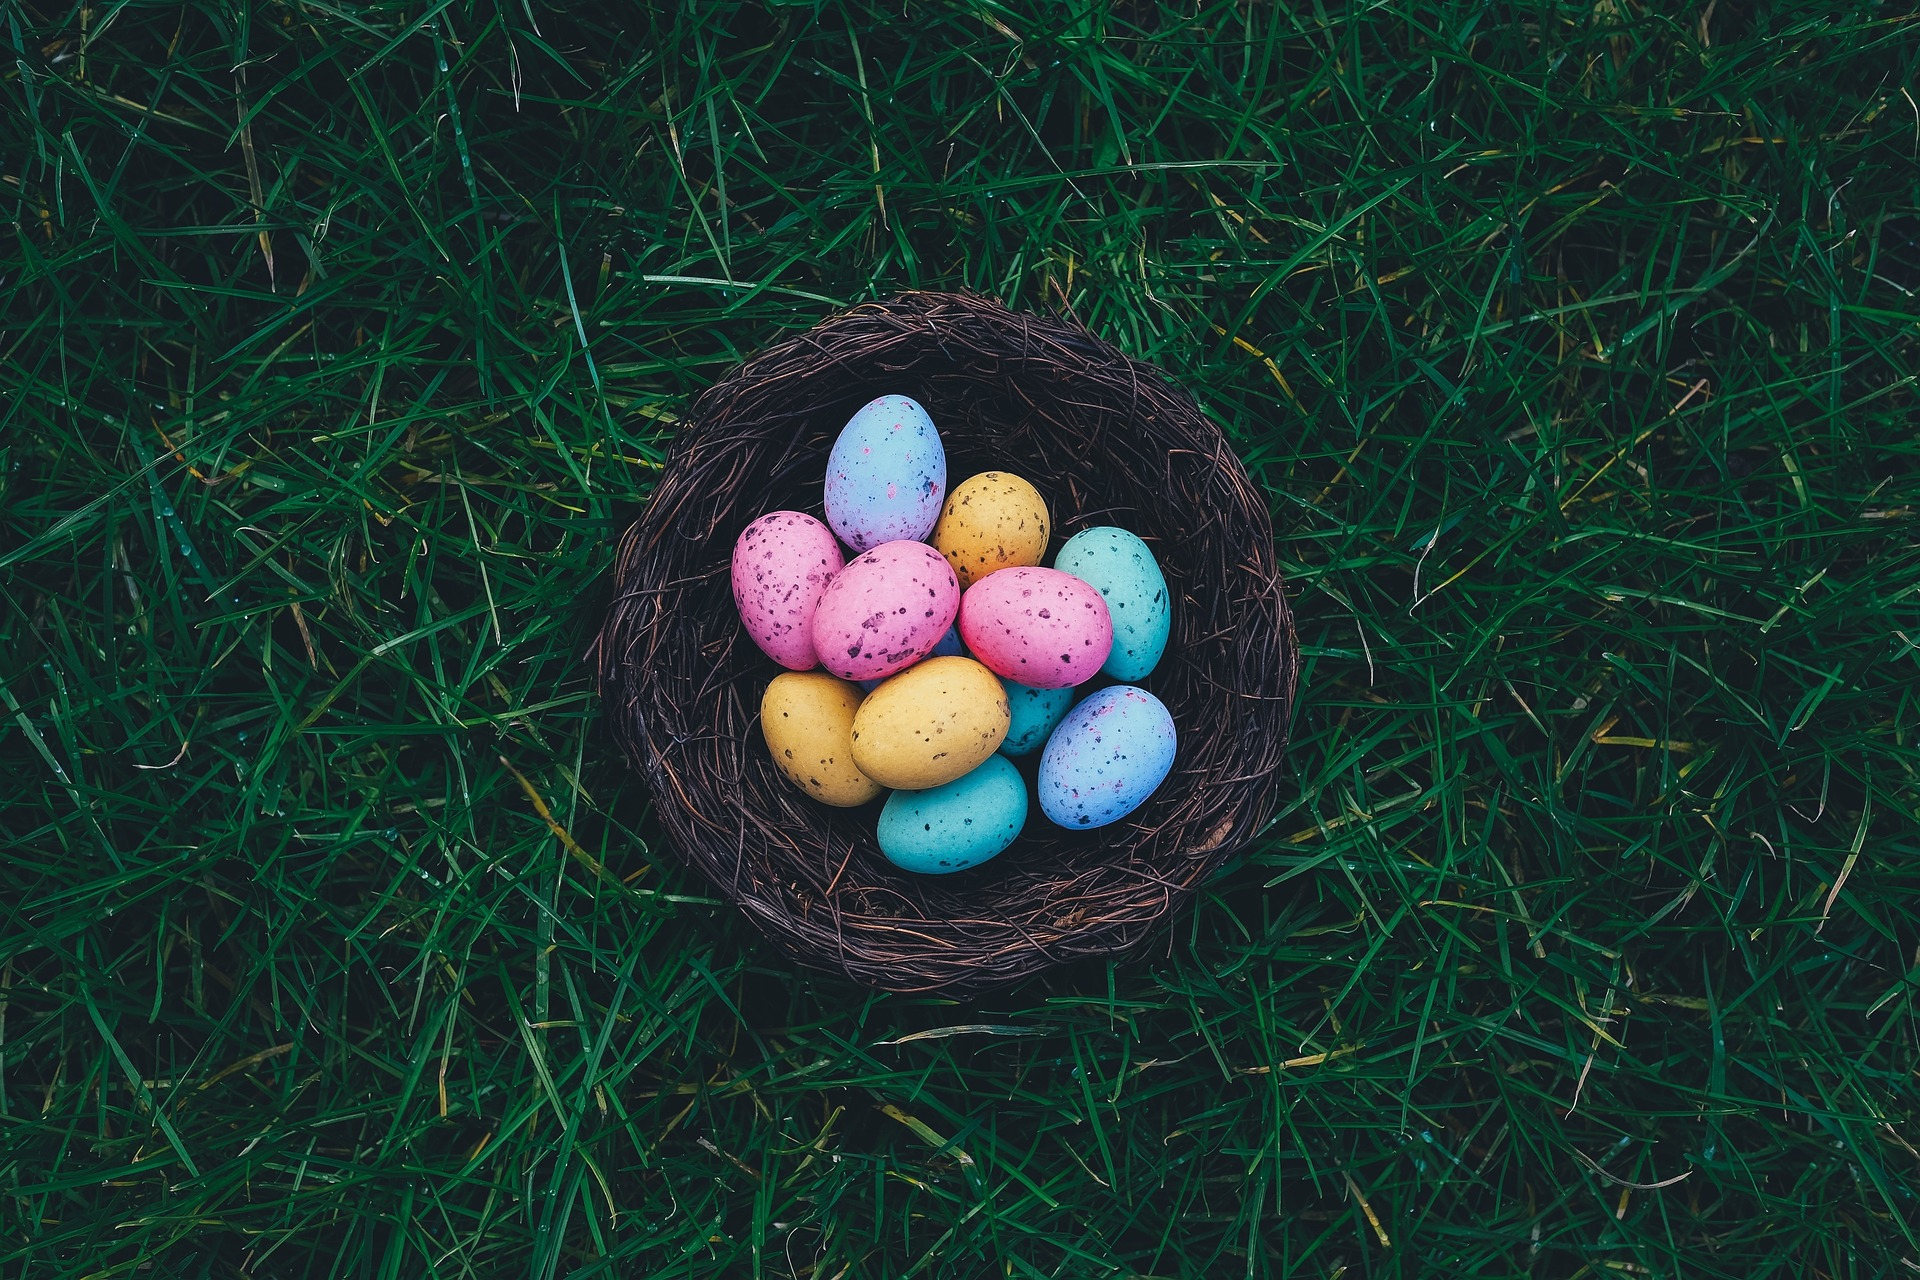 Photo of some mini eggs in a small basket on the grass